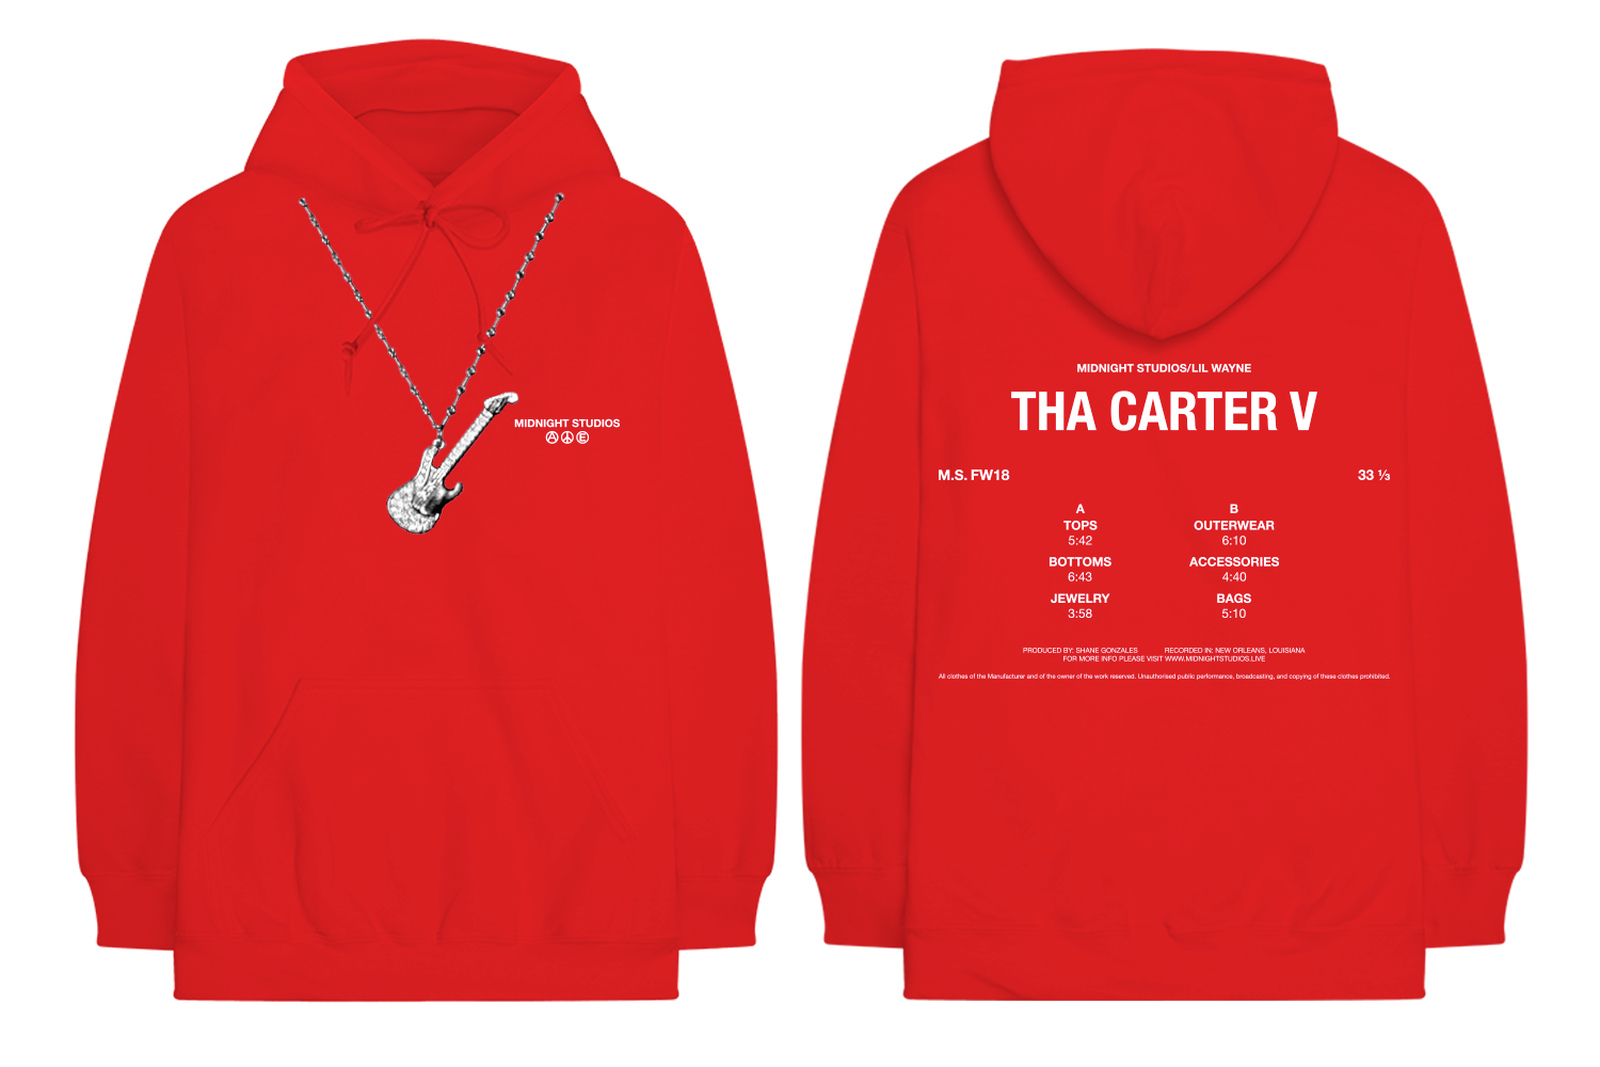 lil wayne carter v 5 merch midnight studios Tha Carter V bravado